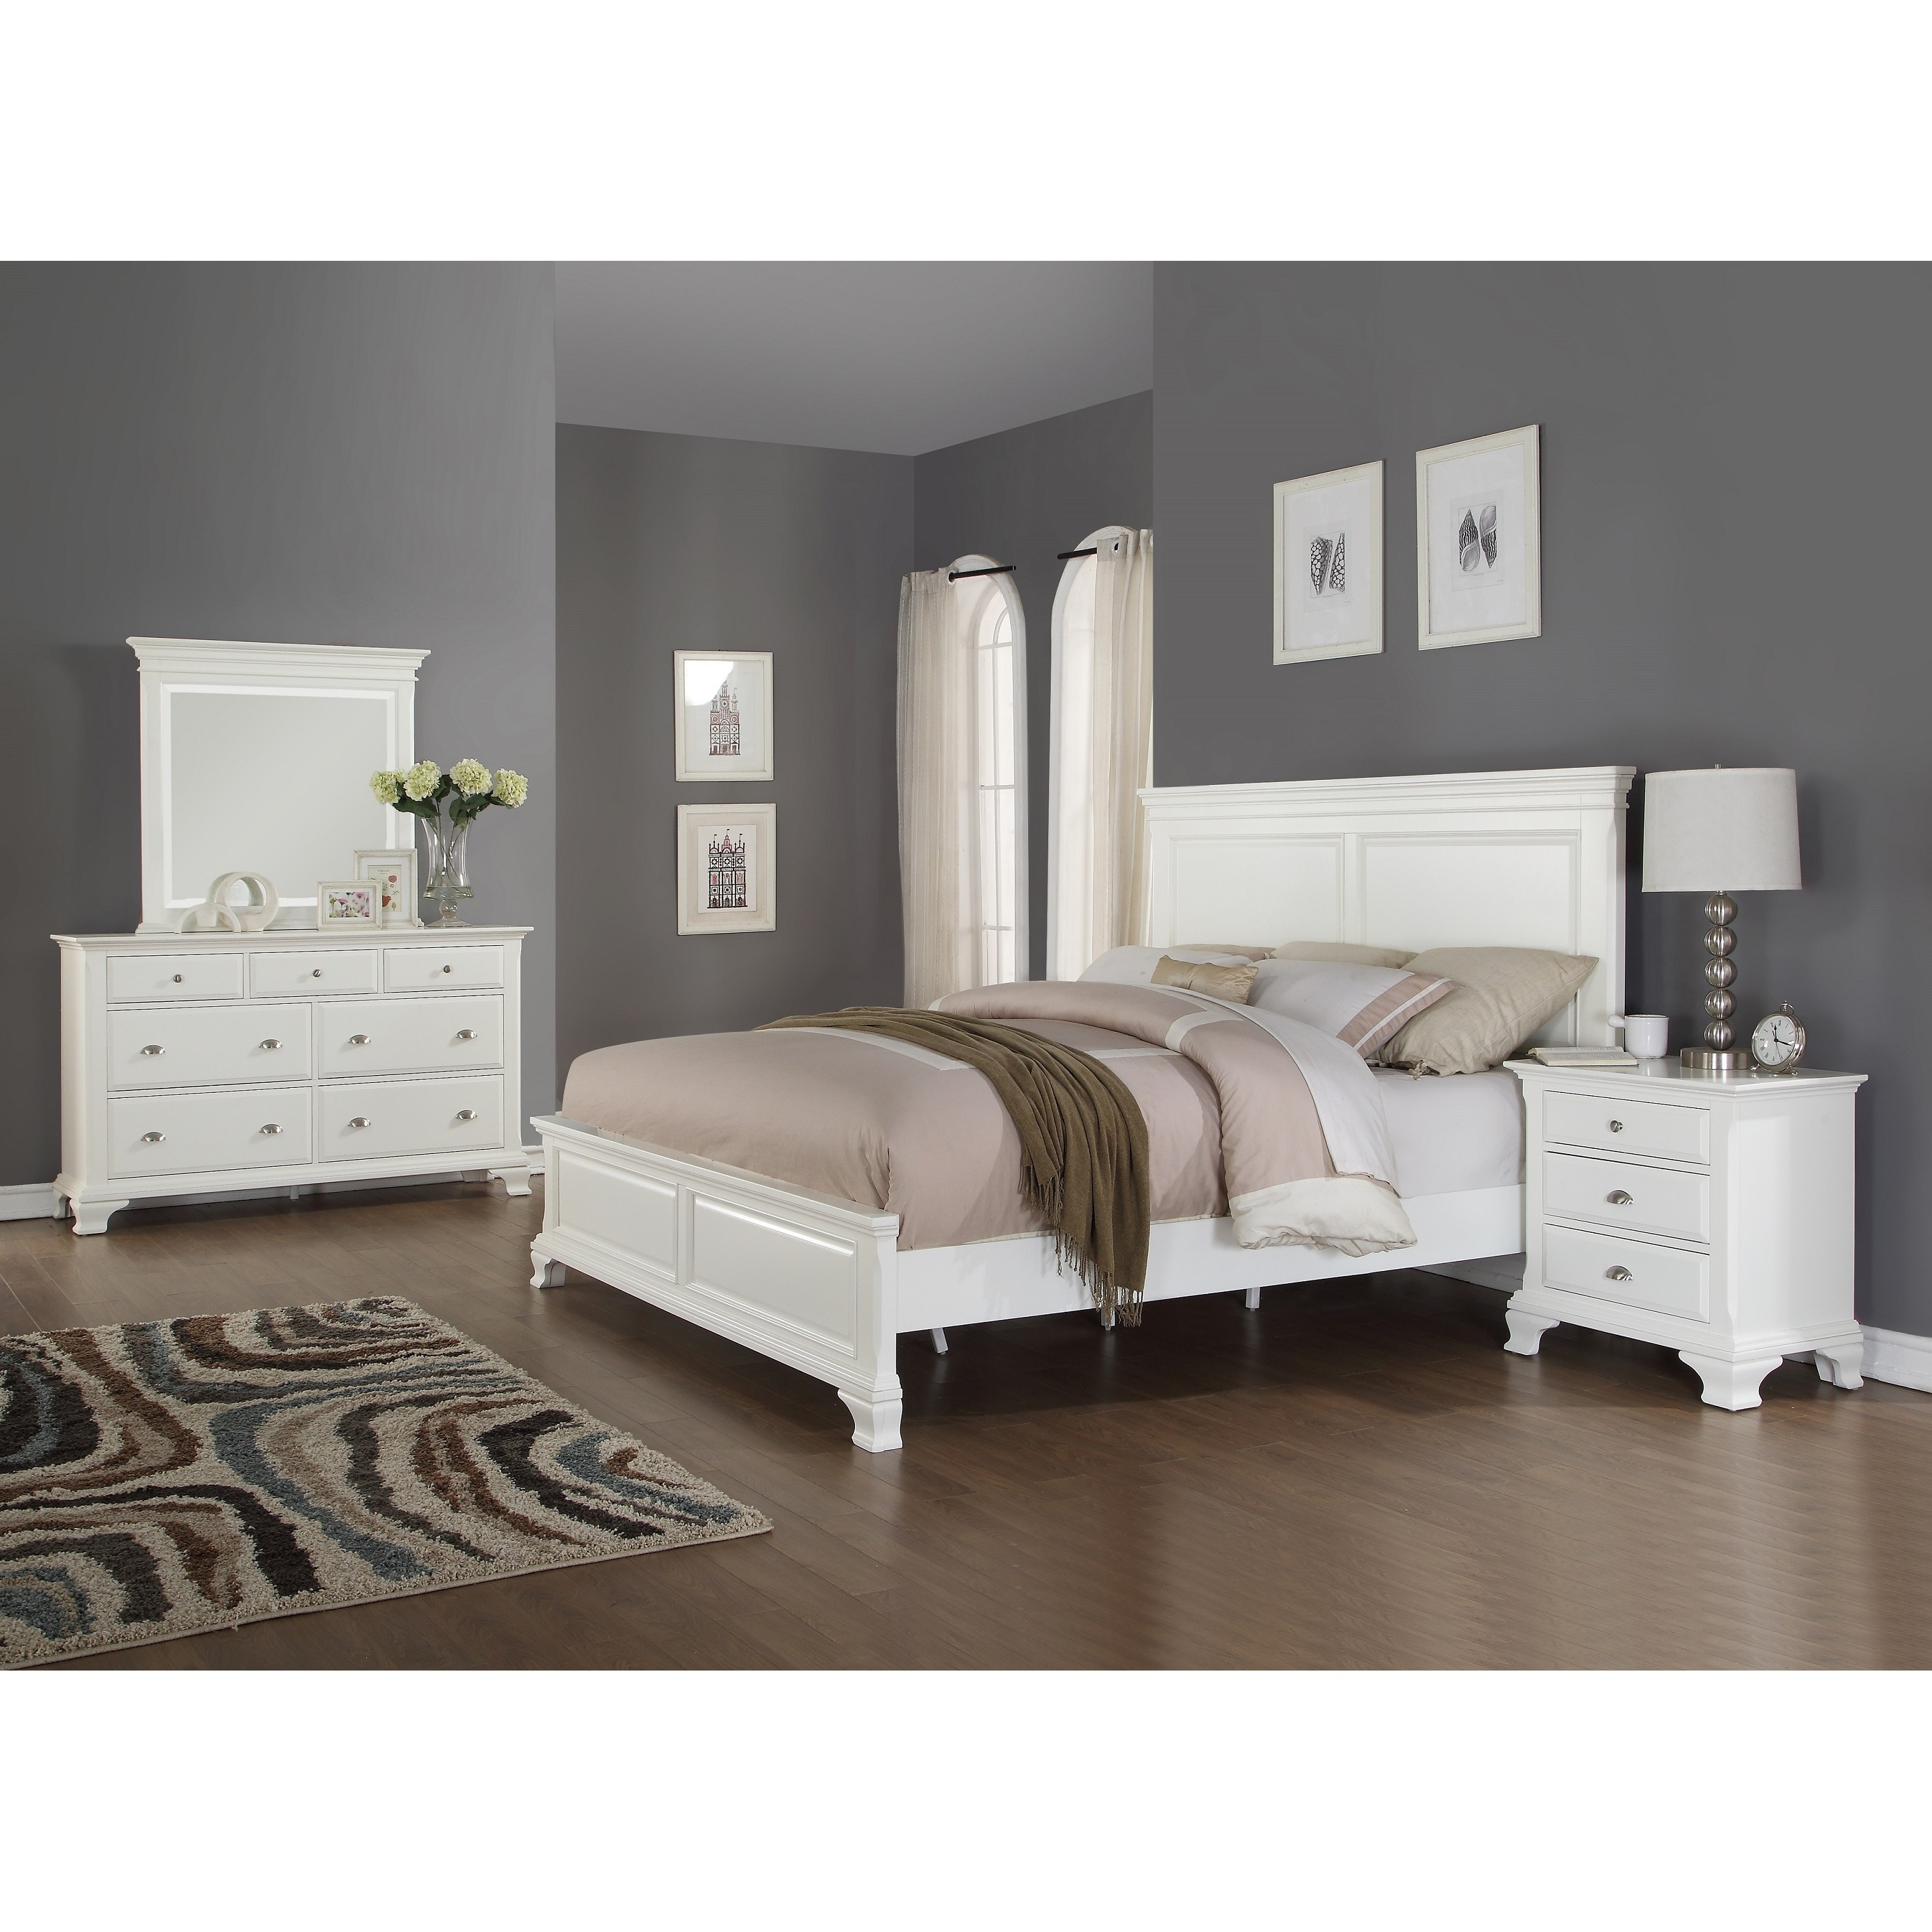 Laveno 012 white wood bedroom furniture set includes queen bed dresser mirror and night stand